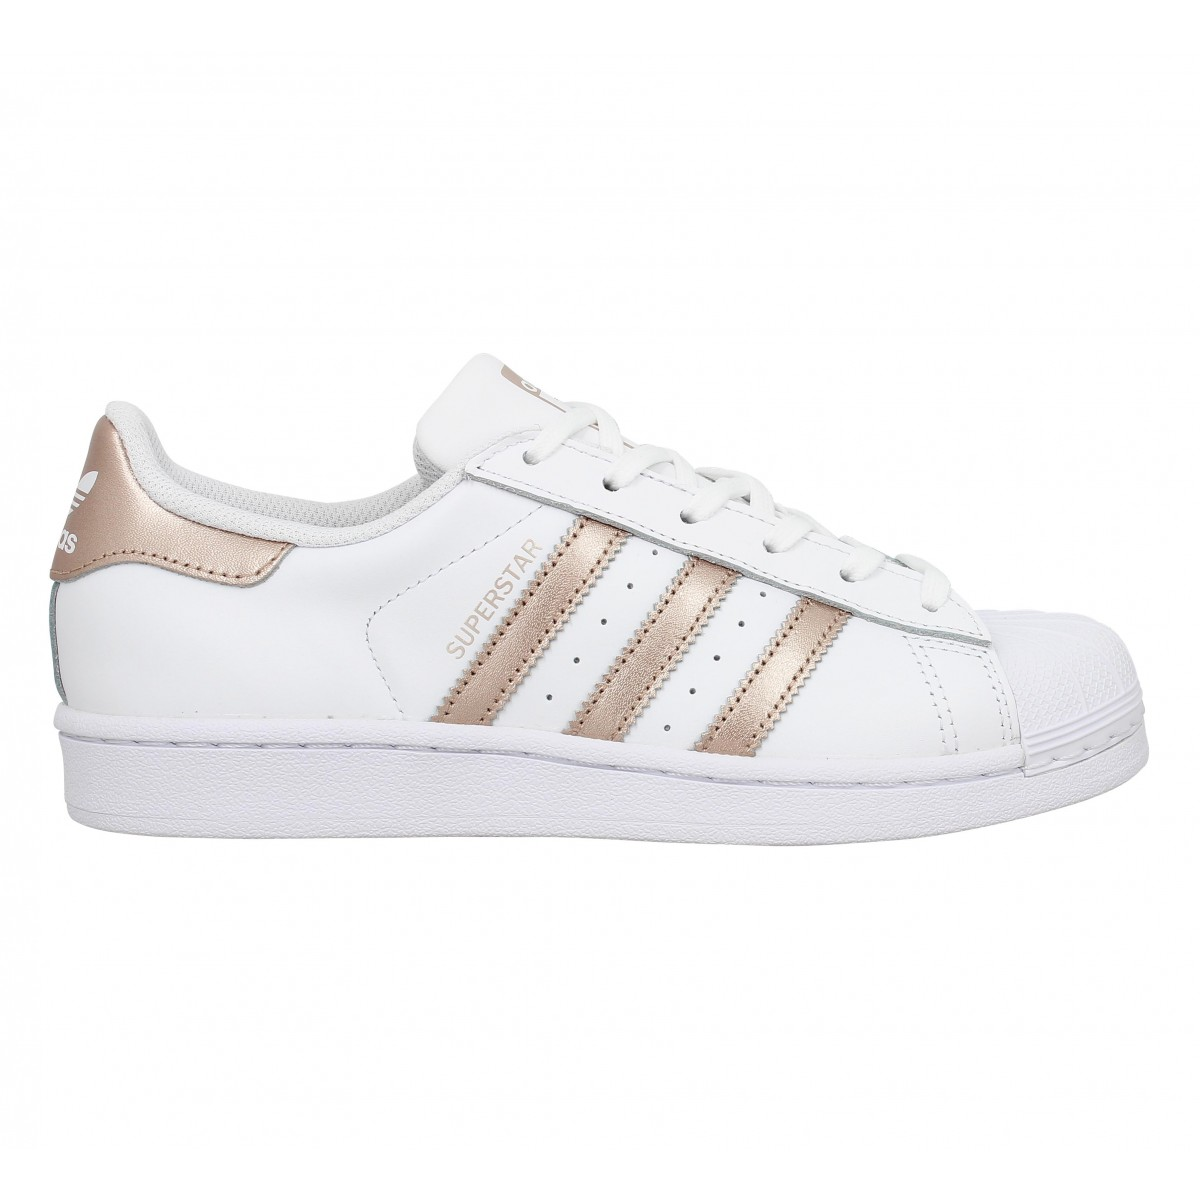 adidas superstar blanc marine femme fanny chaussures. Black Bedroom Furniture Sets. Home Design Ideas